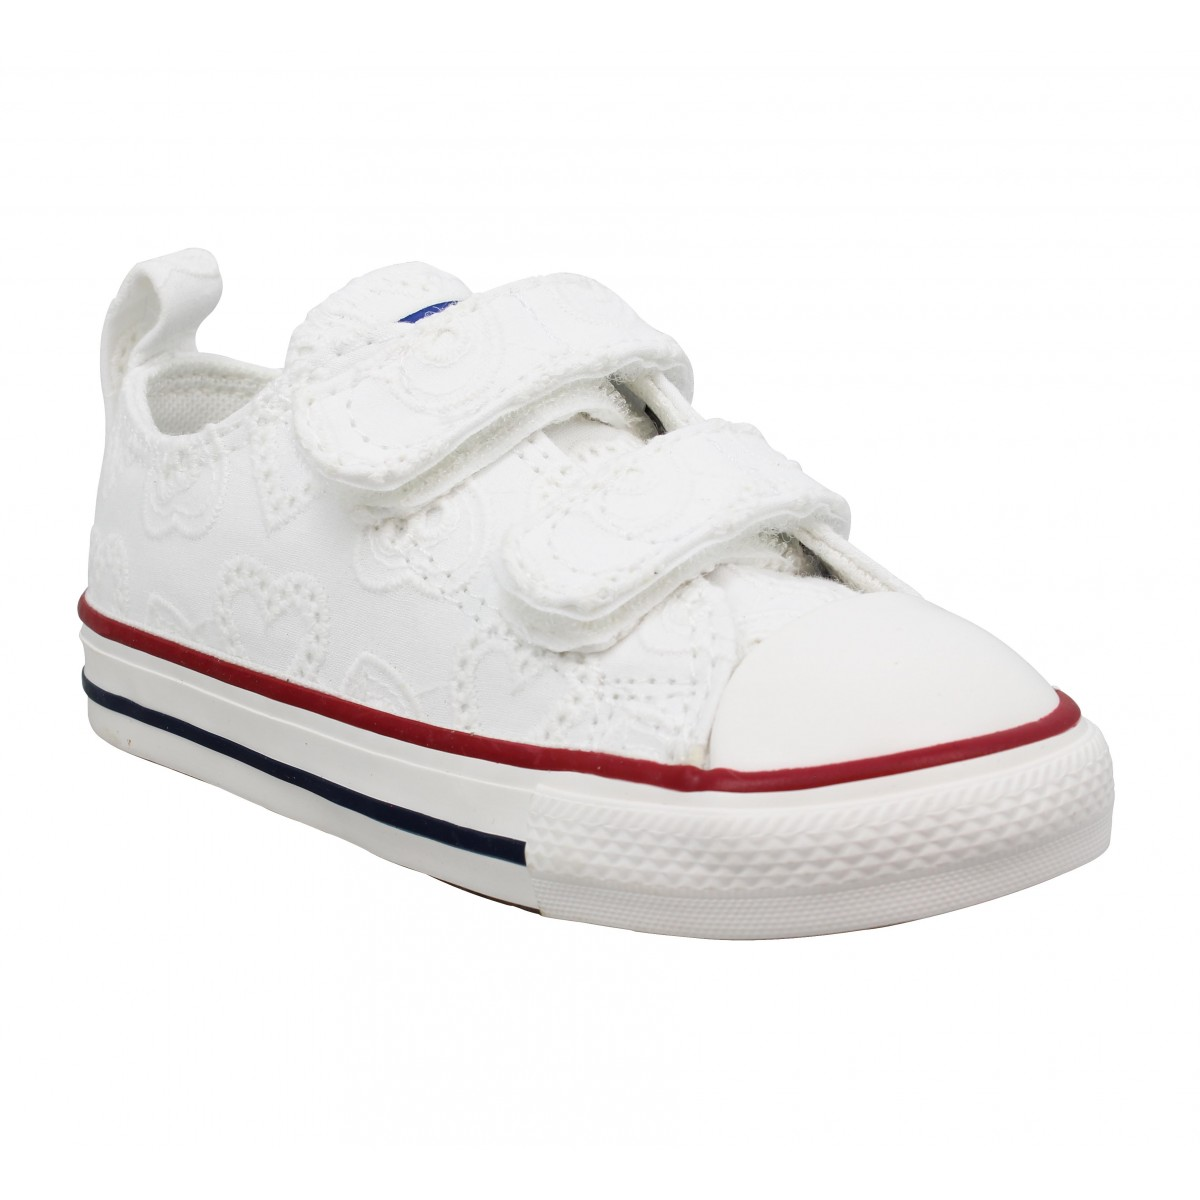 Baskets CONVERSE Chuck Taylor All Star 2V toile brodee coeur Enfant Blanc